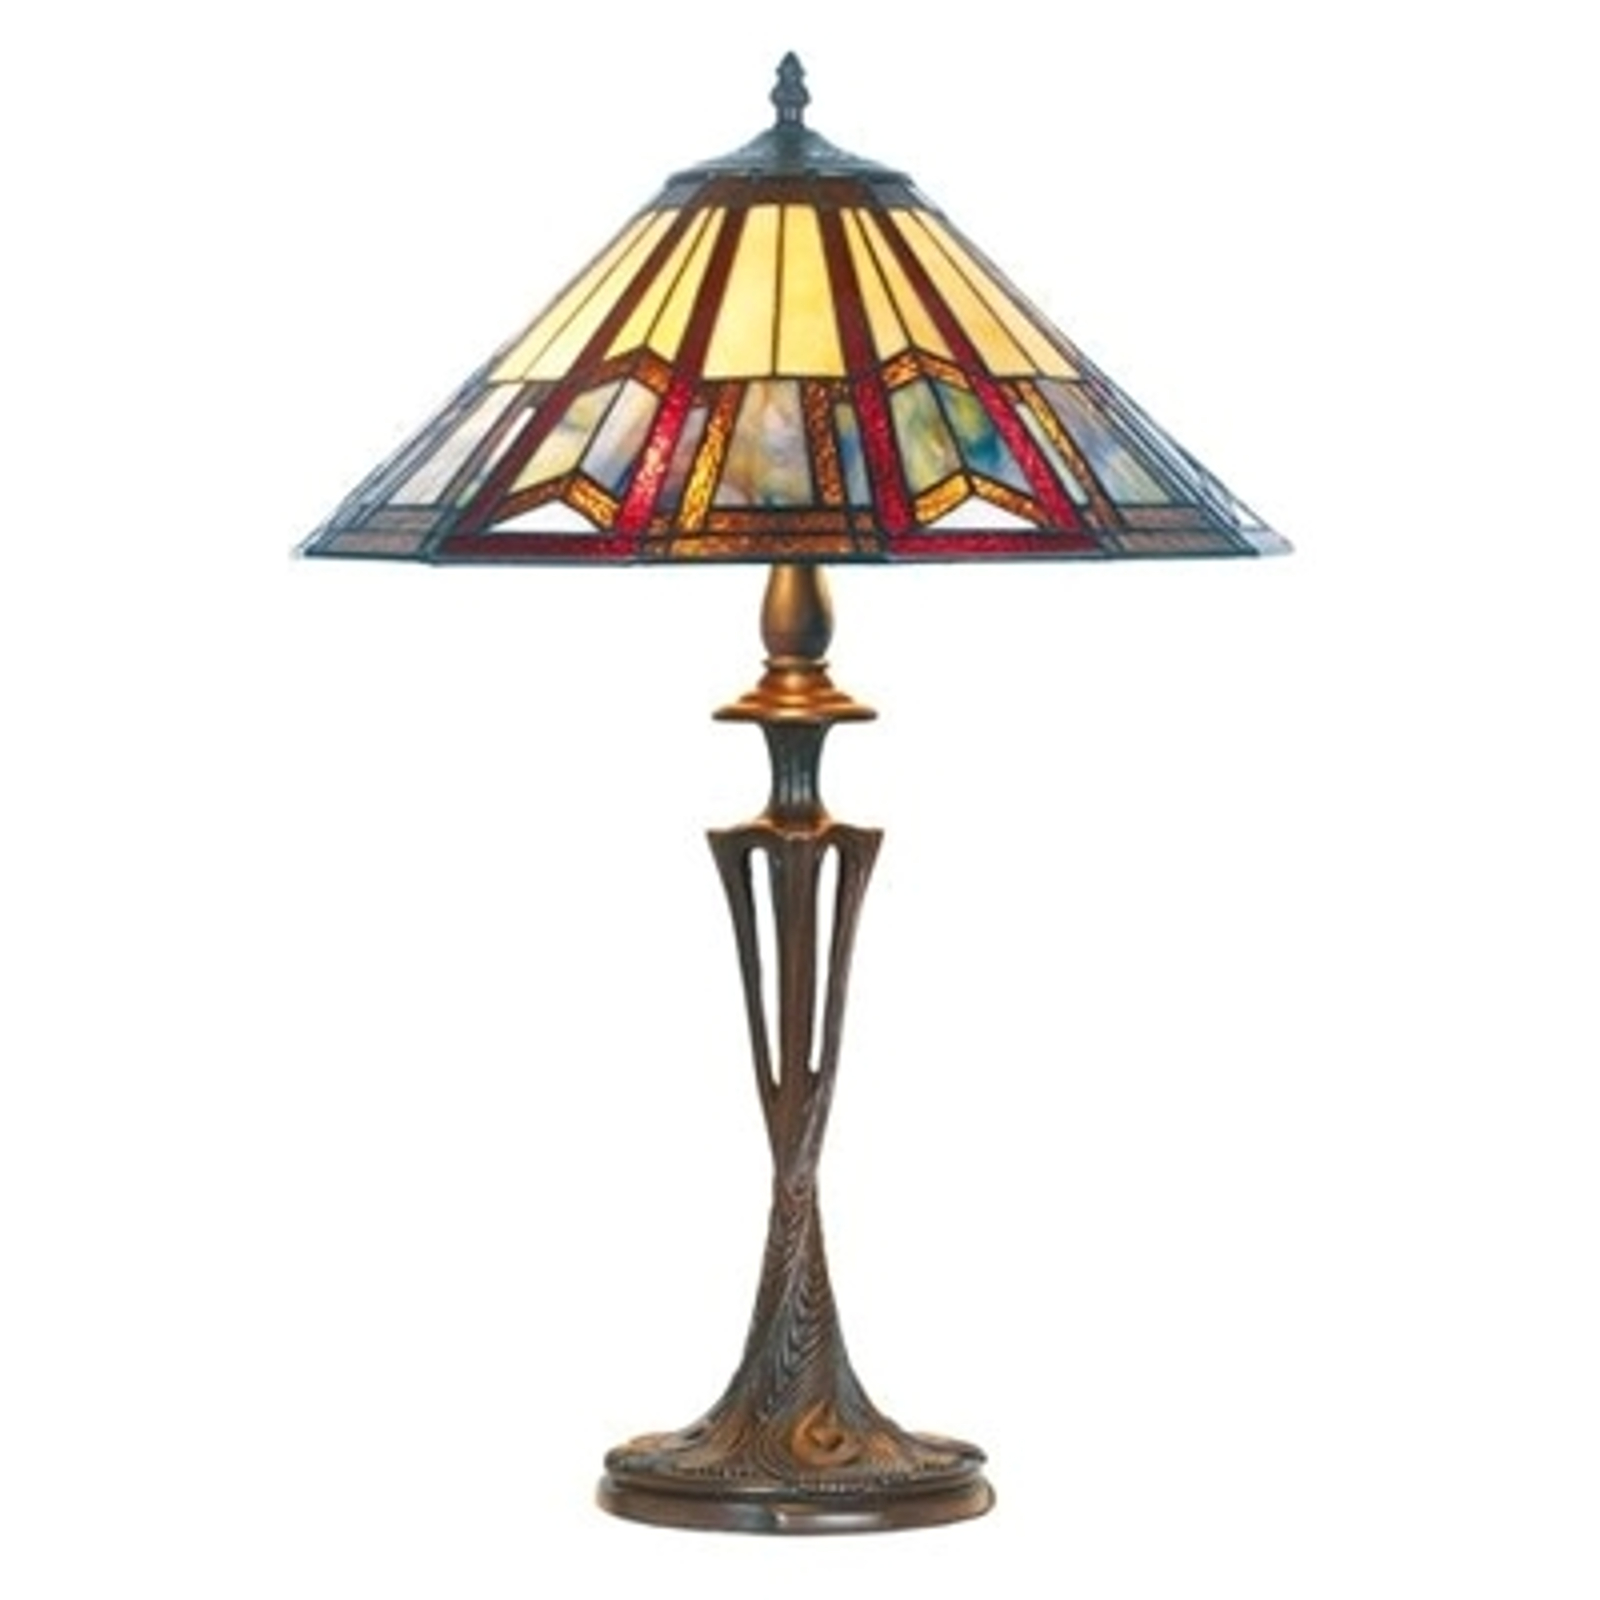 LILLIE elegant Tiffany-style table lamp_1032185_1